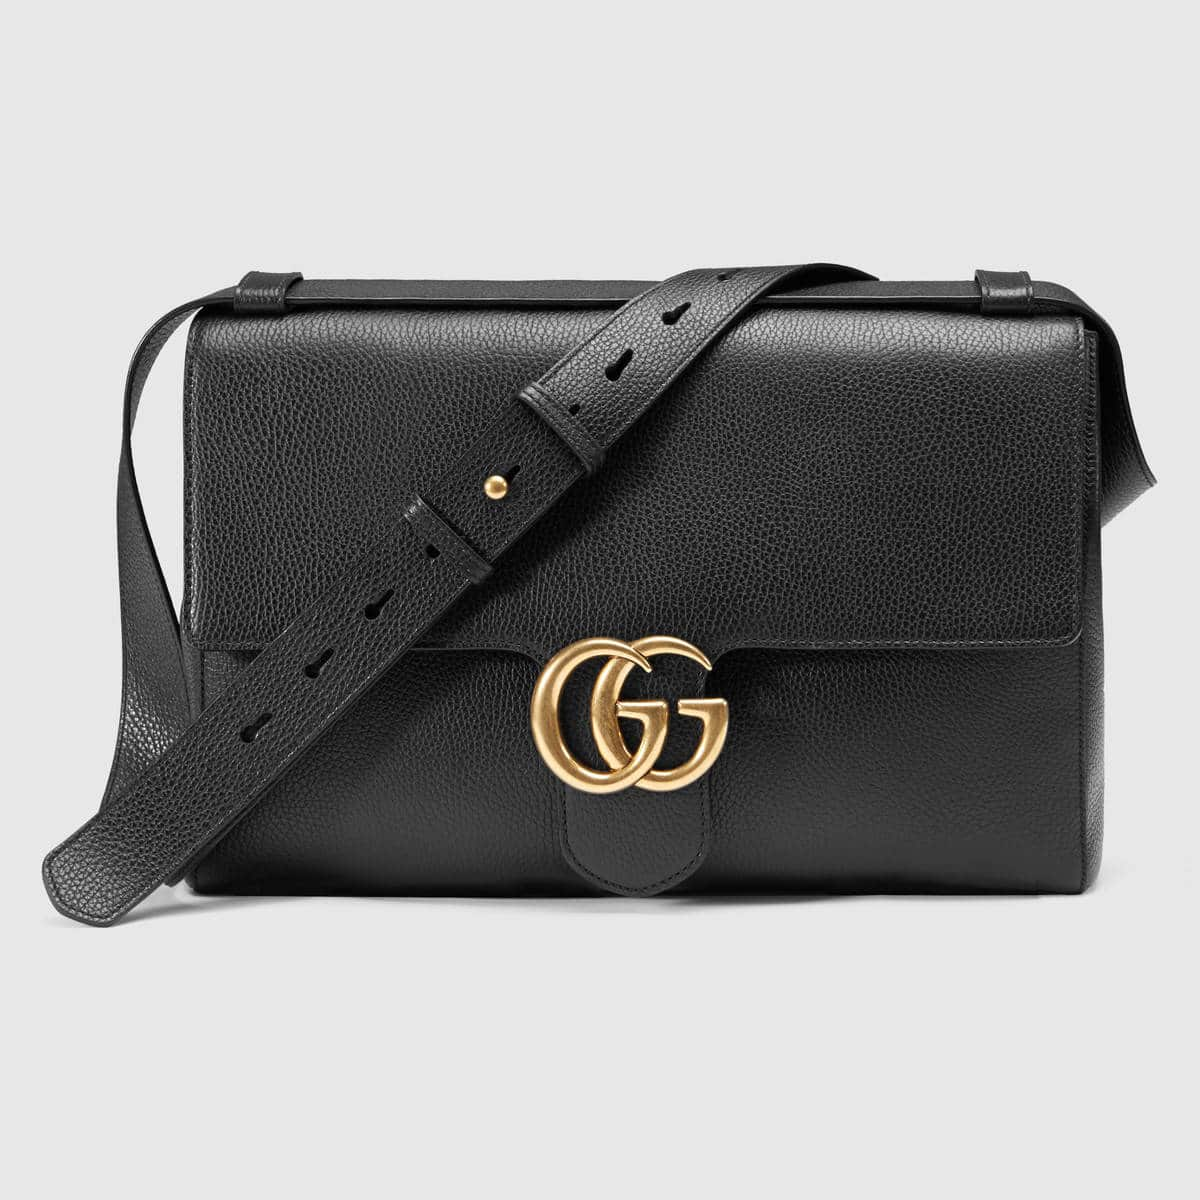 745efef84a2 Kaminorth Rakuten Global Market Gucci 2way Tote Bag Gucci Bamboo Handbag In Black  Monogram Canvas And Leather Gucci Black Leather Large Babouska Indy ...